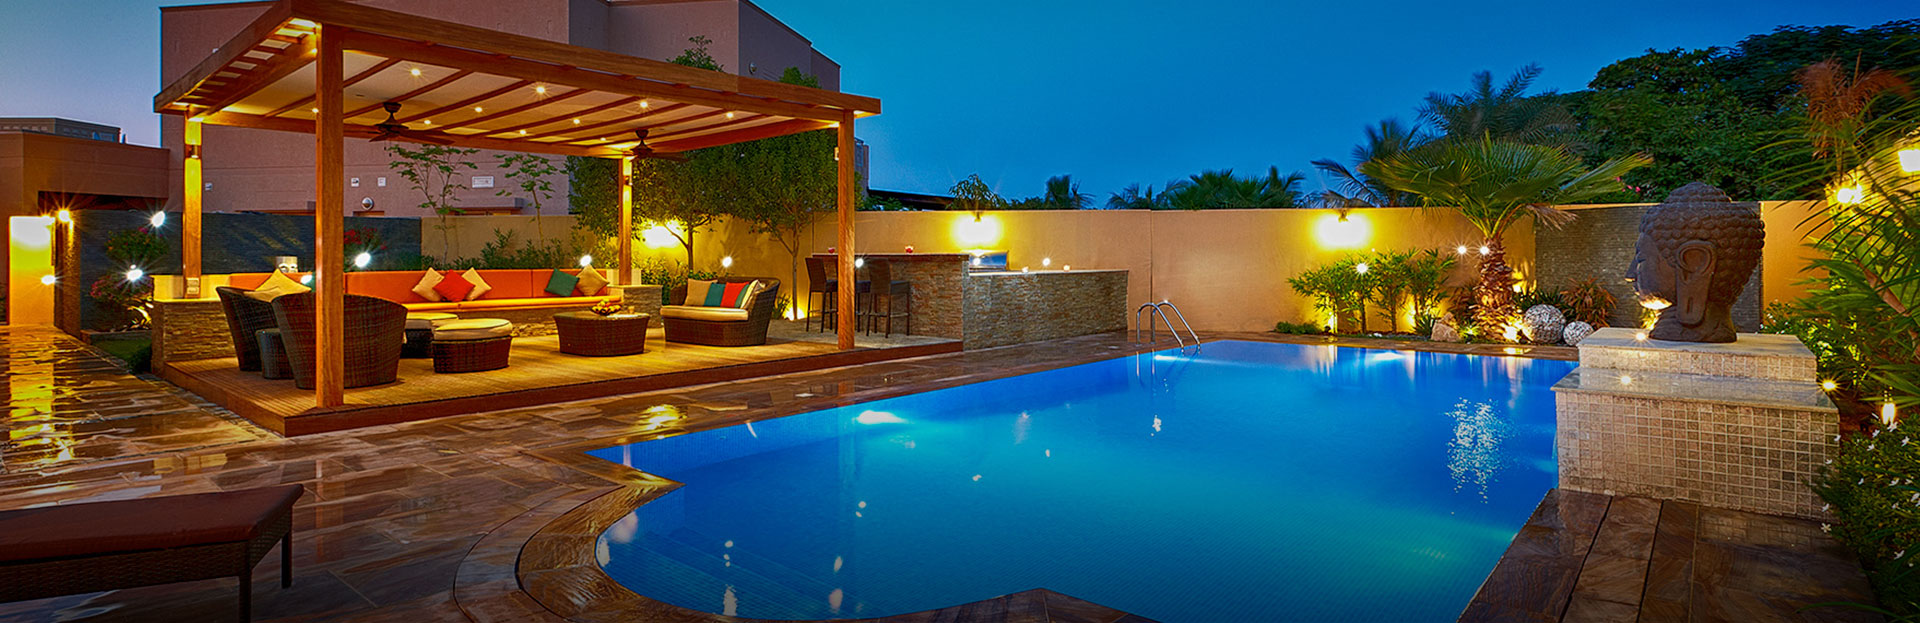 Swimming pool designer swimming pool contractor in dubai for Pool design dubai